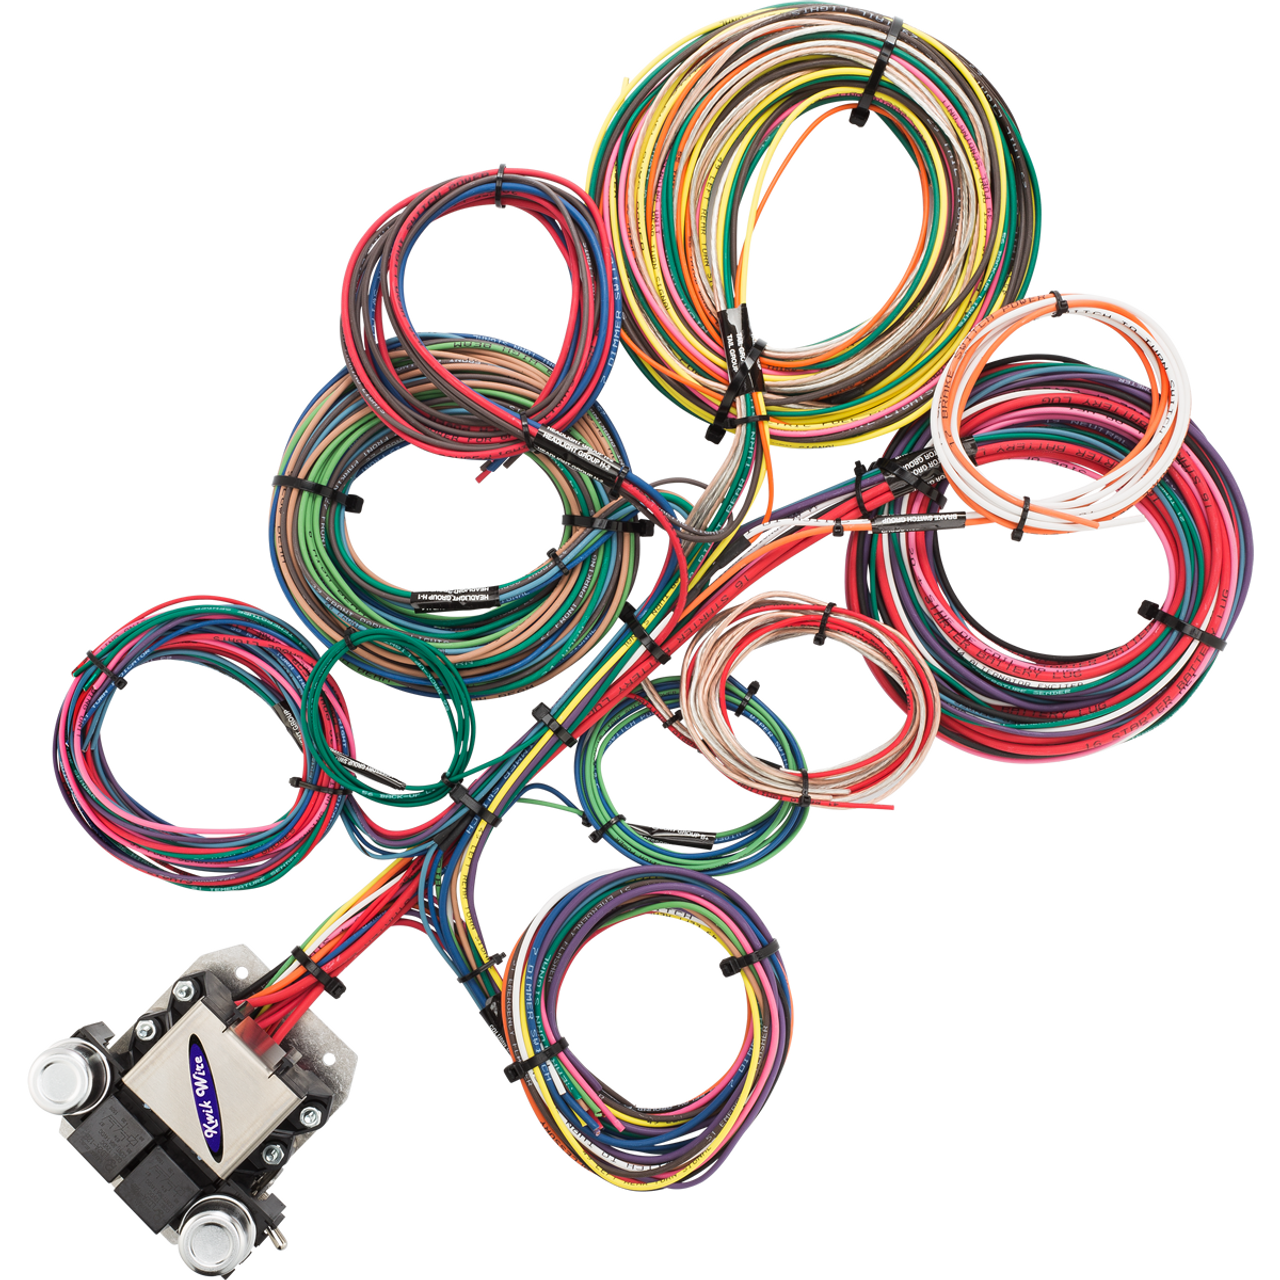 Electrical Wiring Harness Diagram Services Industry In Pune 8 Circuit Wire Kwikwire Com Electrify Your Ride Rh Connectors Course